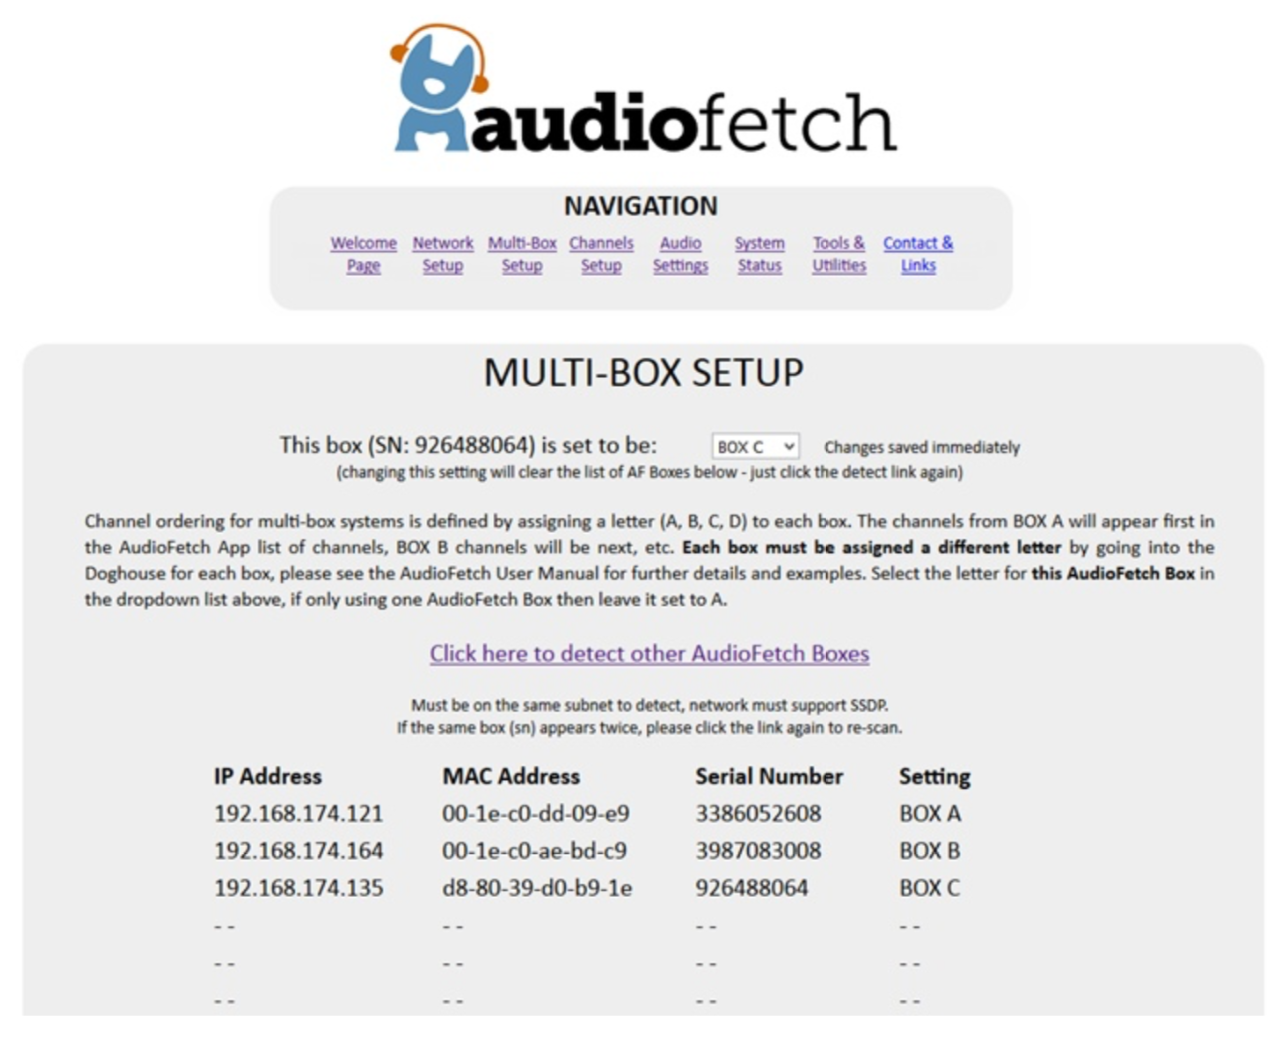 AudioFetch Doghouse MultiBox Setup 2